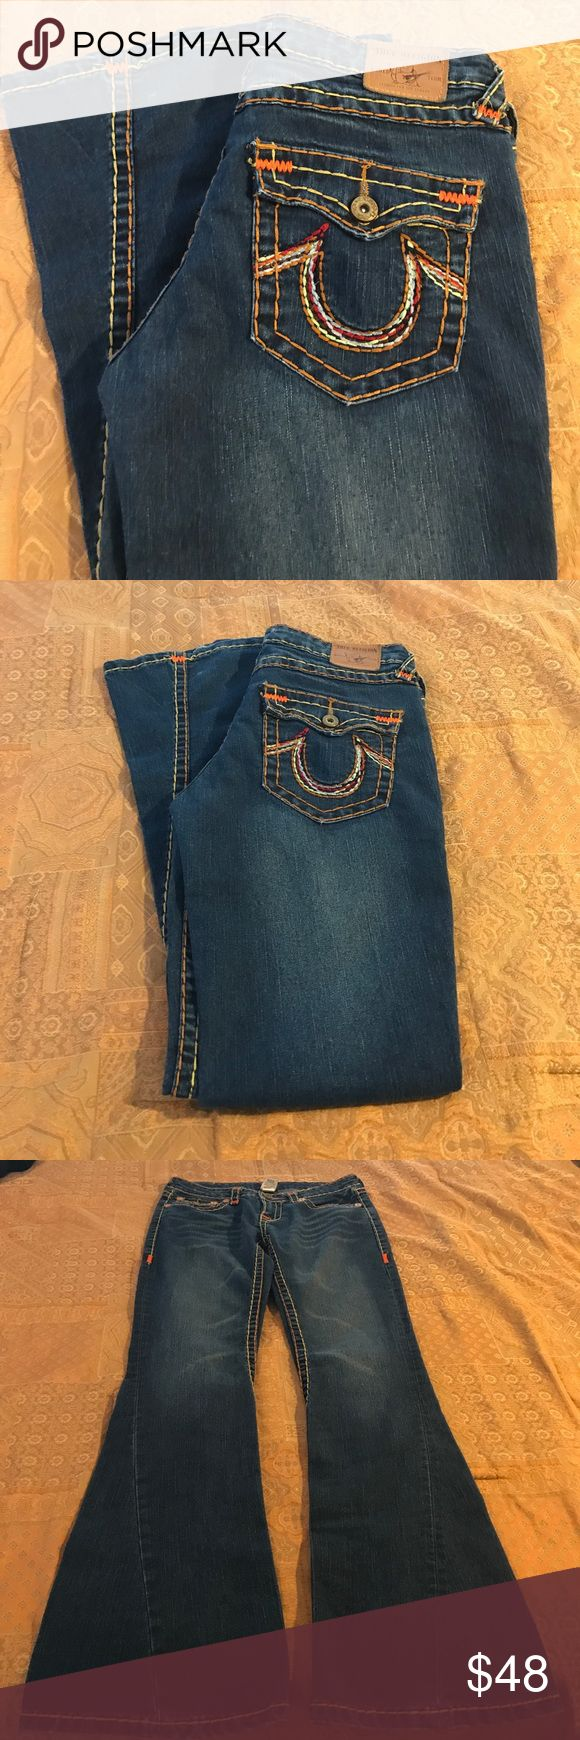 Sale True religion size 31 True Religion twisted joey size 31. Hem from the knee down twists in the front super cute and in great condition. Previously loved just not for me. Inseam 33 waist laying flat 16. Front rise 8 back rise 12.5. Bottom hem 10.5 slim through legs. Slight wear on hem True Religion Jeans